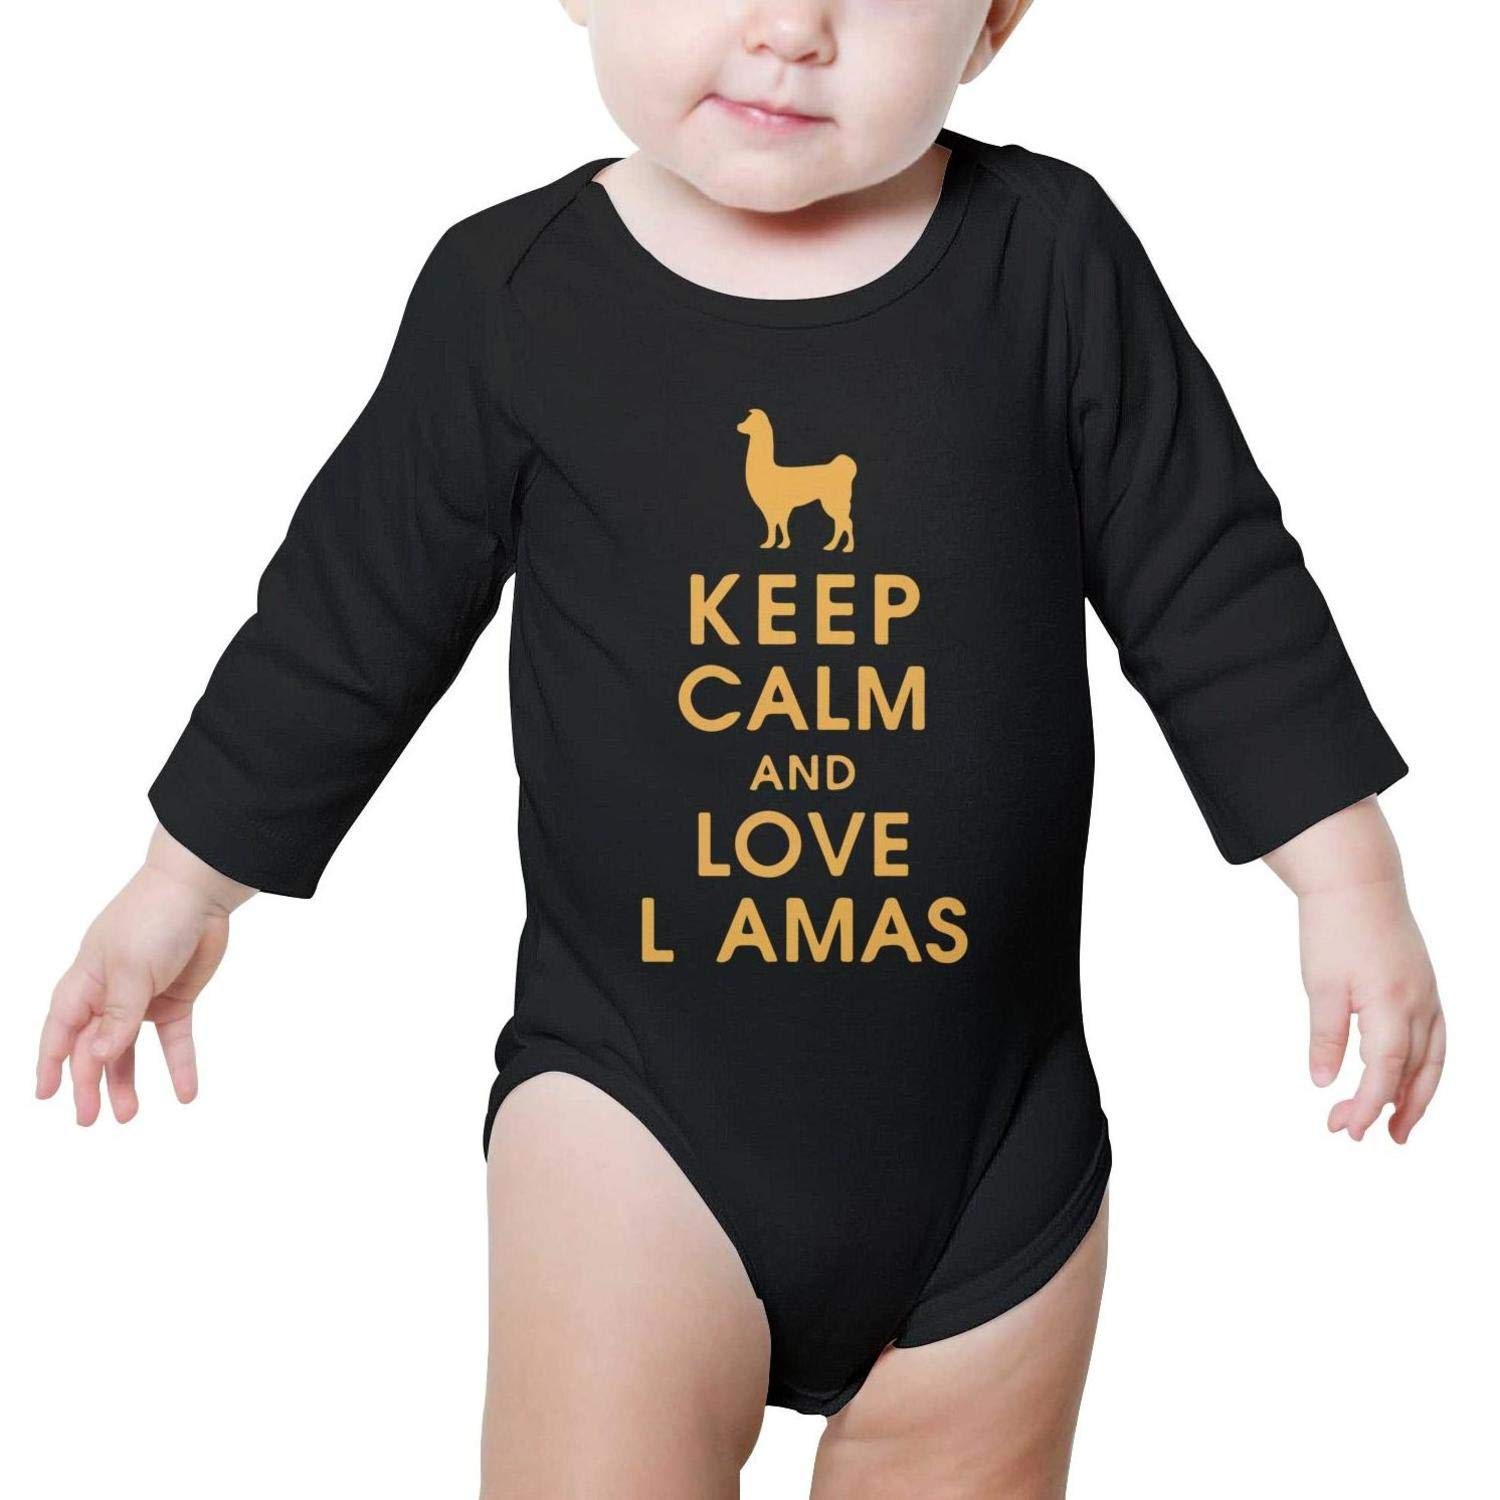 Baby bodysuit First birthday gift Funny quotes print girls  jumpsuit gender reveal boys onecies custom baby baby romper baby shower